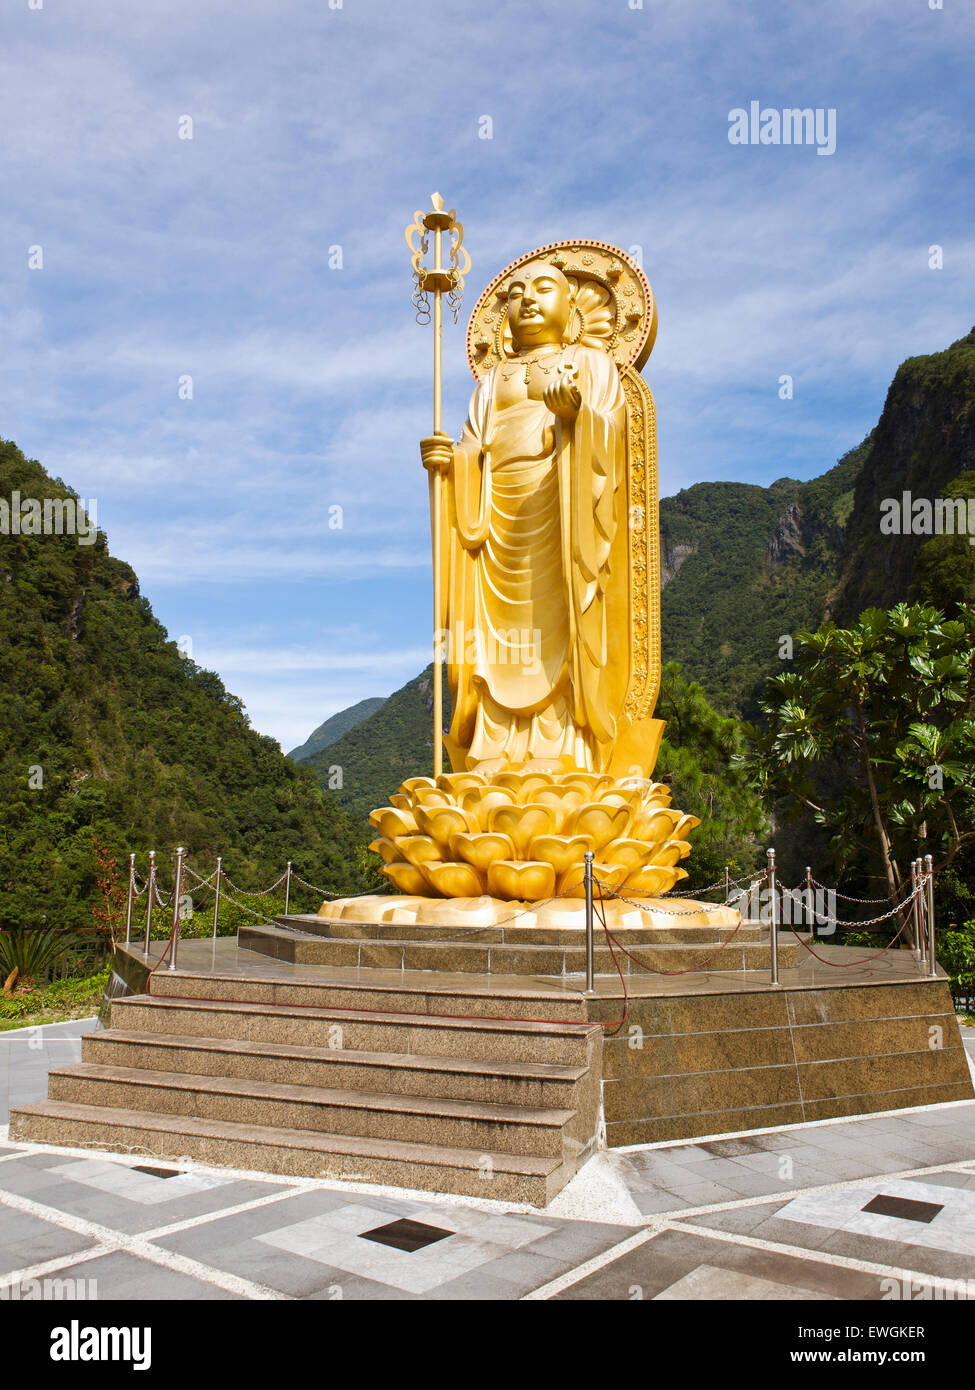 Ti Tsang Statue at the Hsiang-te Temple in the Taroko Gorge, Taiwan - Stock Image